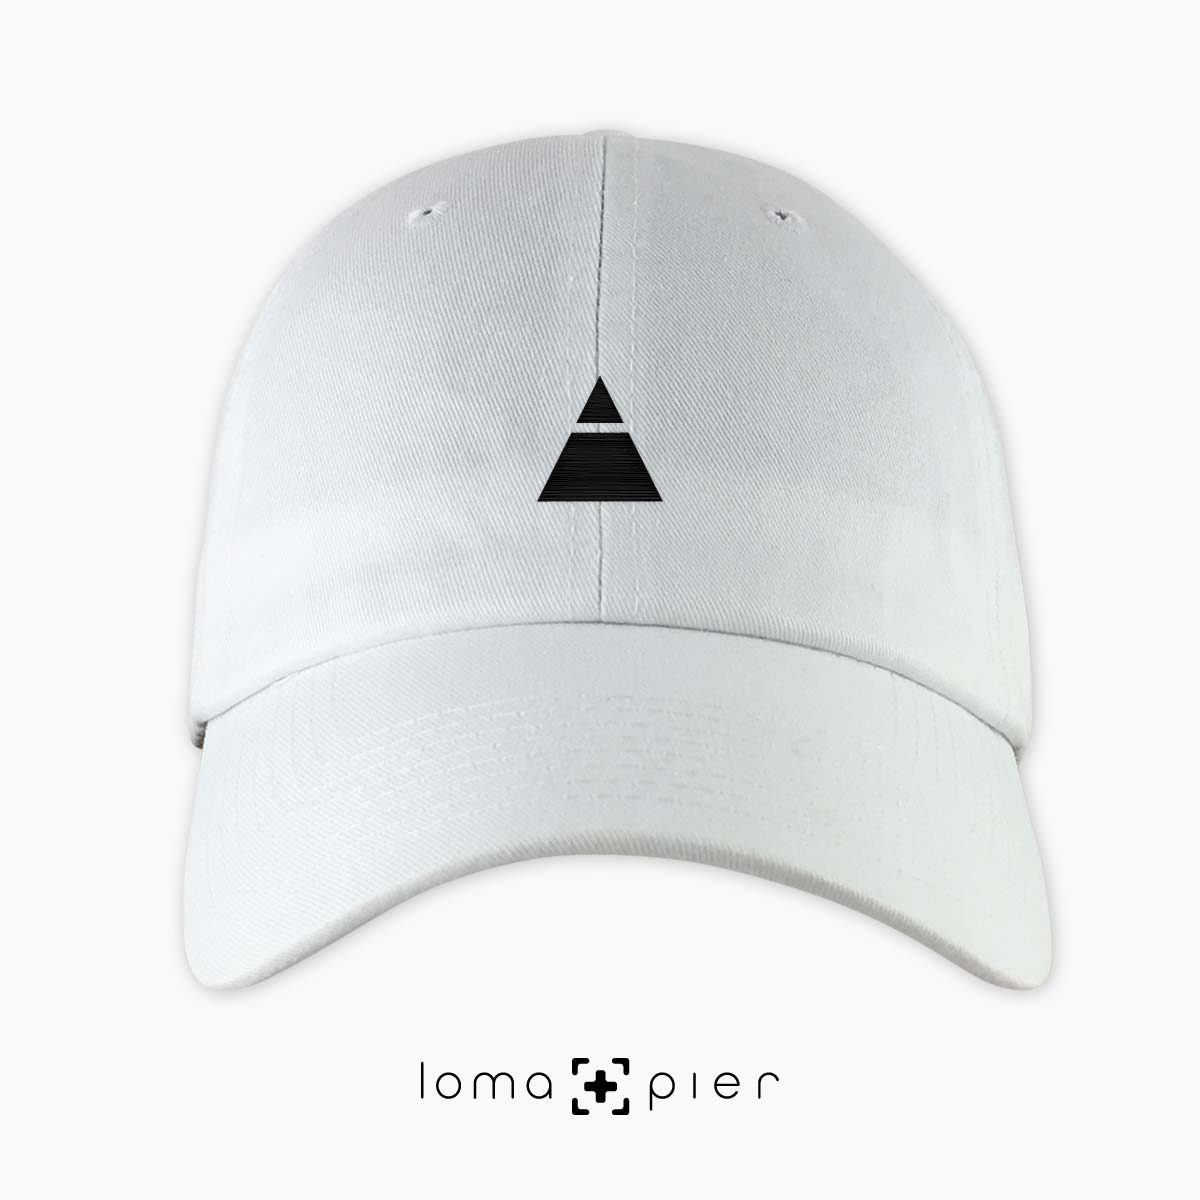 ​TRYANGLE icon embroidered on a ​white unstructured dad hat with ​black thread by loma+pier hat store made in the USA